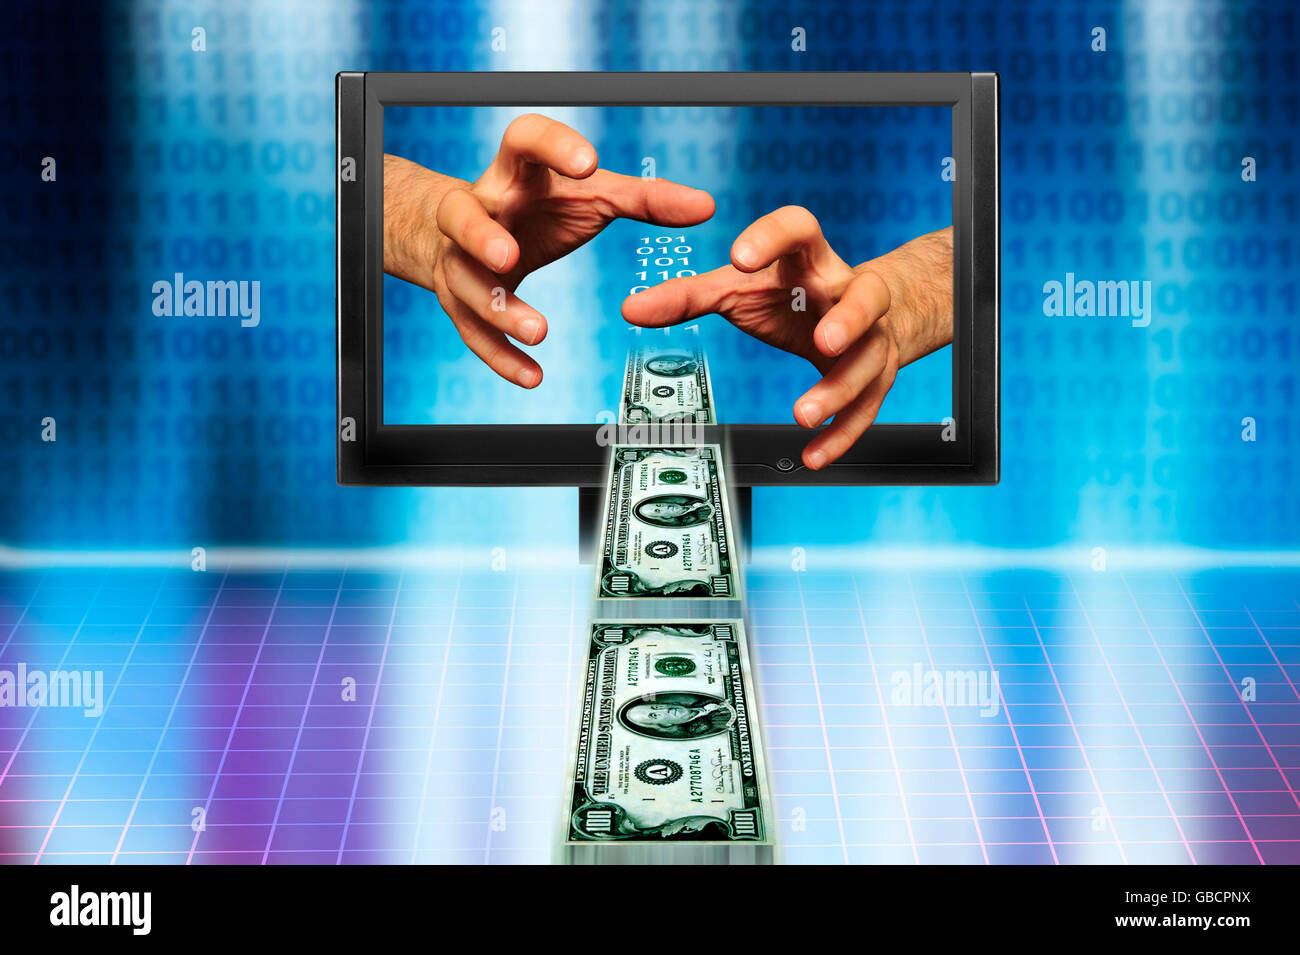 hands from inside a computer monitor grabbing money, internet financial crime - Stock Image